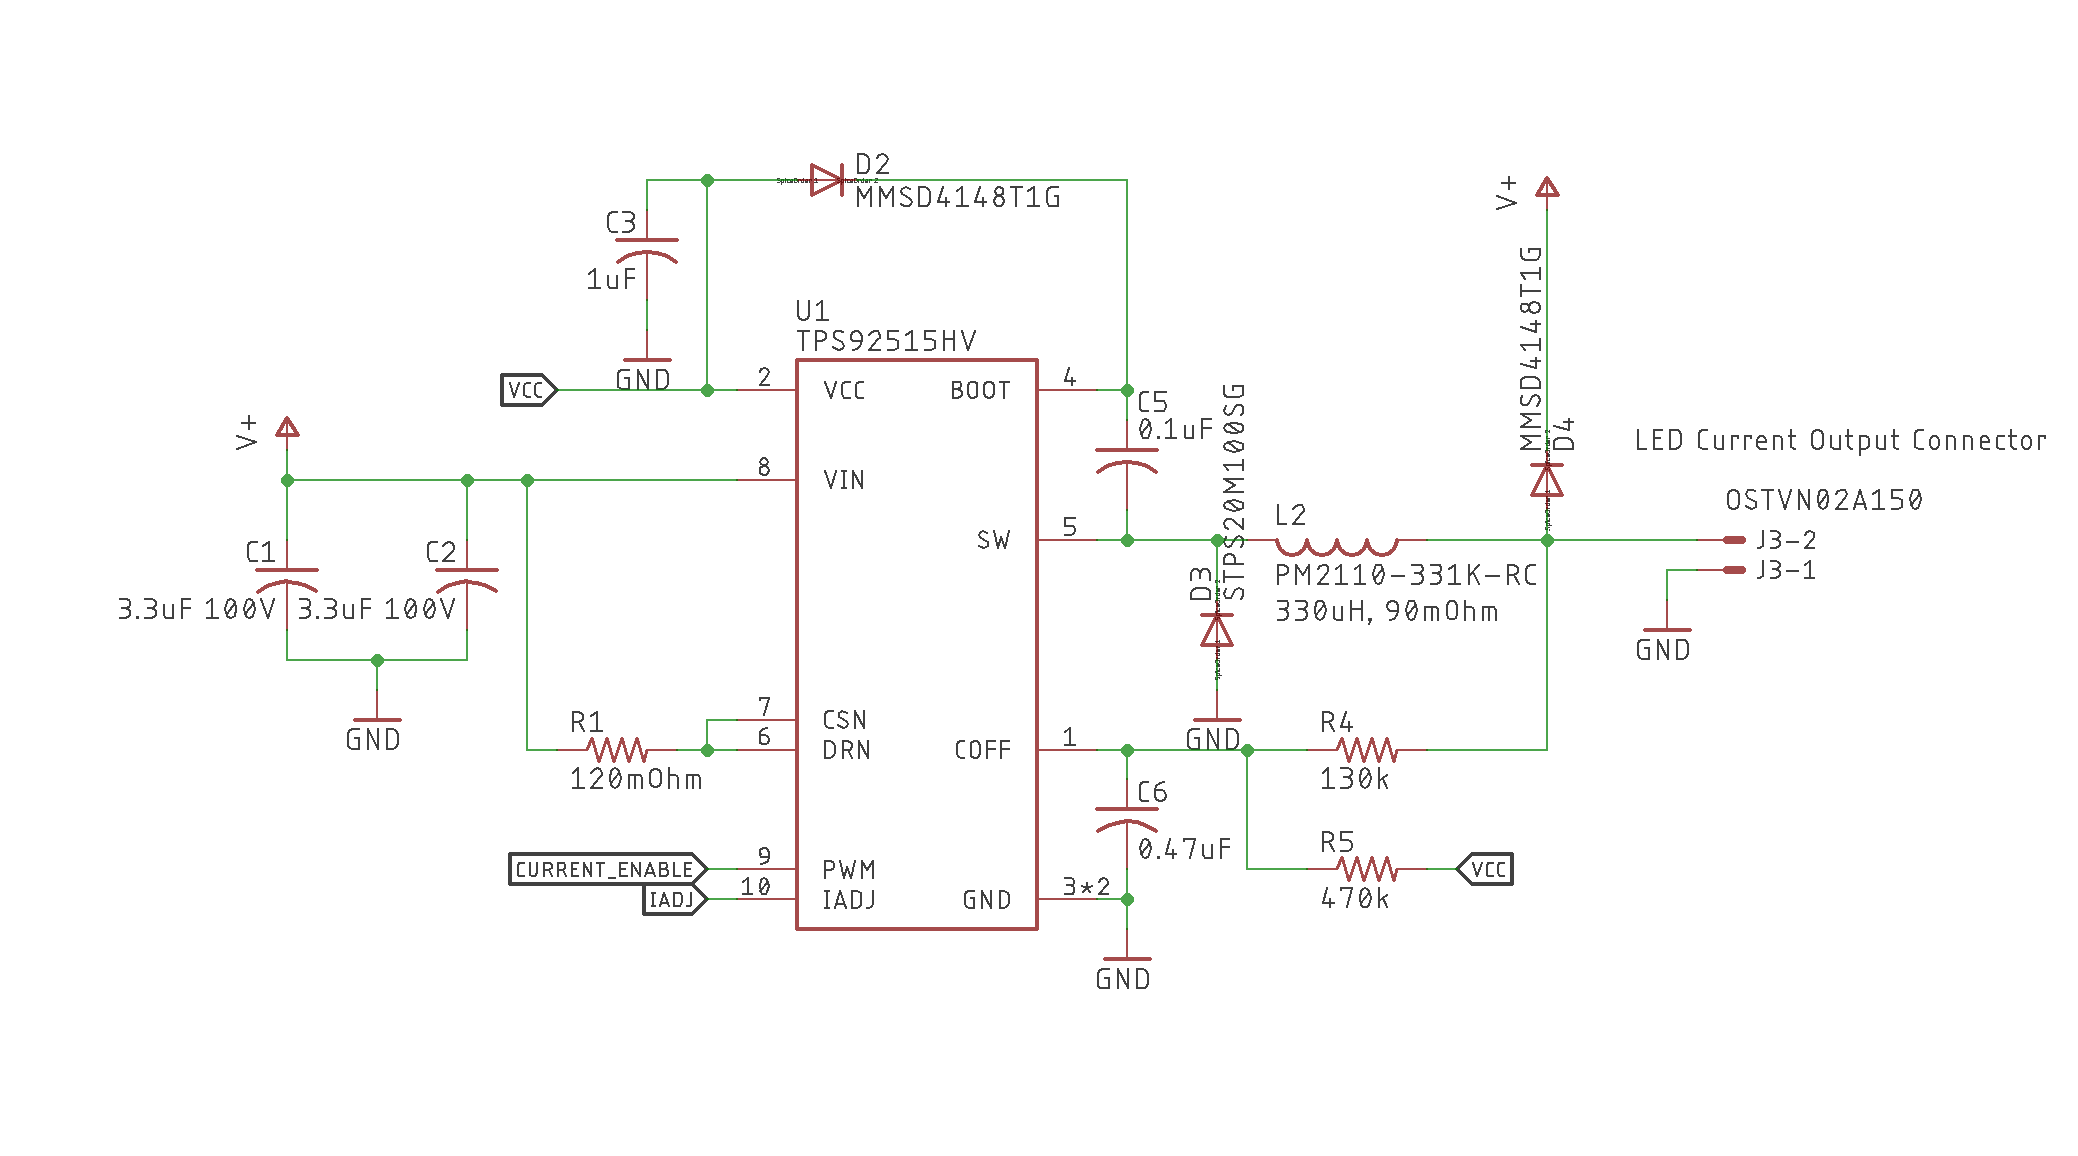 Resolved Tps92515hv Real Circuit Implementation Of Webench Design Schematic Basic Strobe This Is The I Implemented And As Best Can Check With A Multimeter Pins Arent Shorted Together Components Are Correctly Inserted